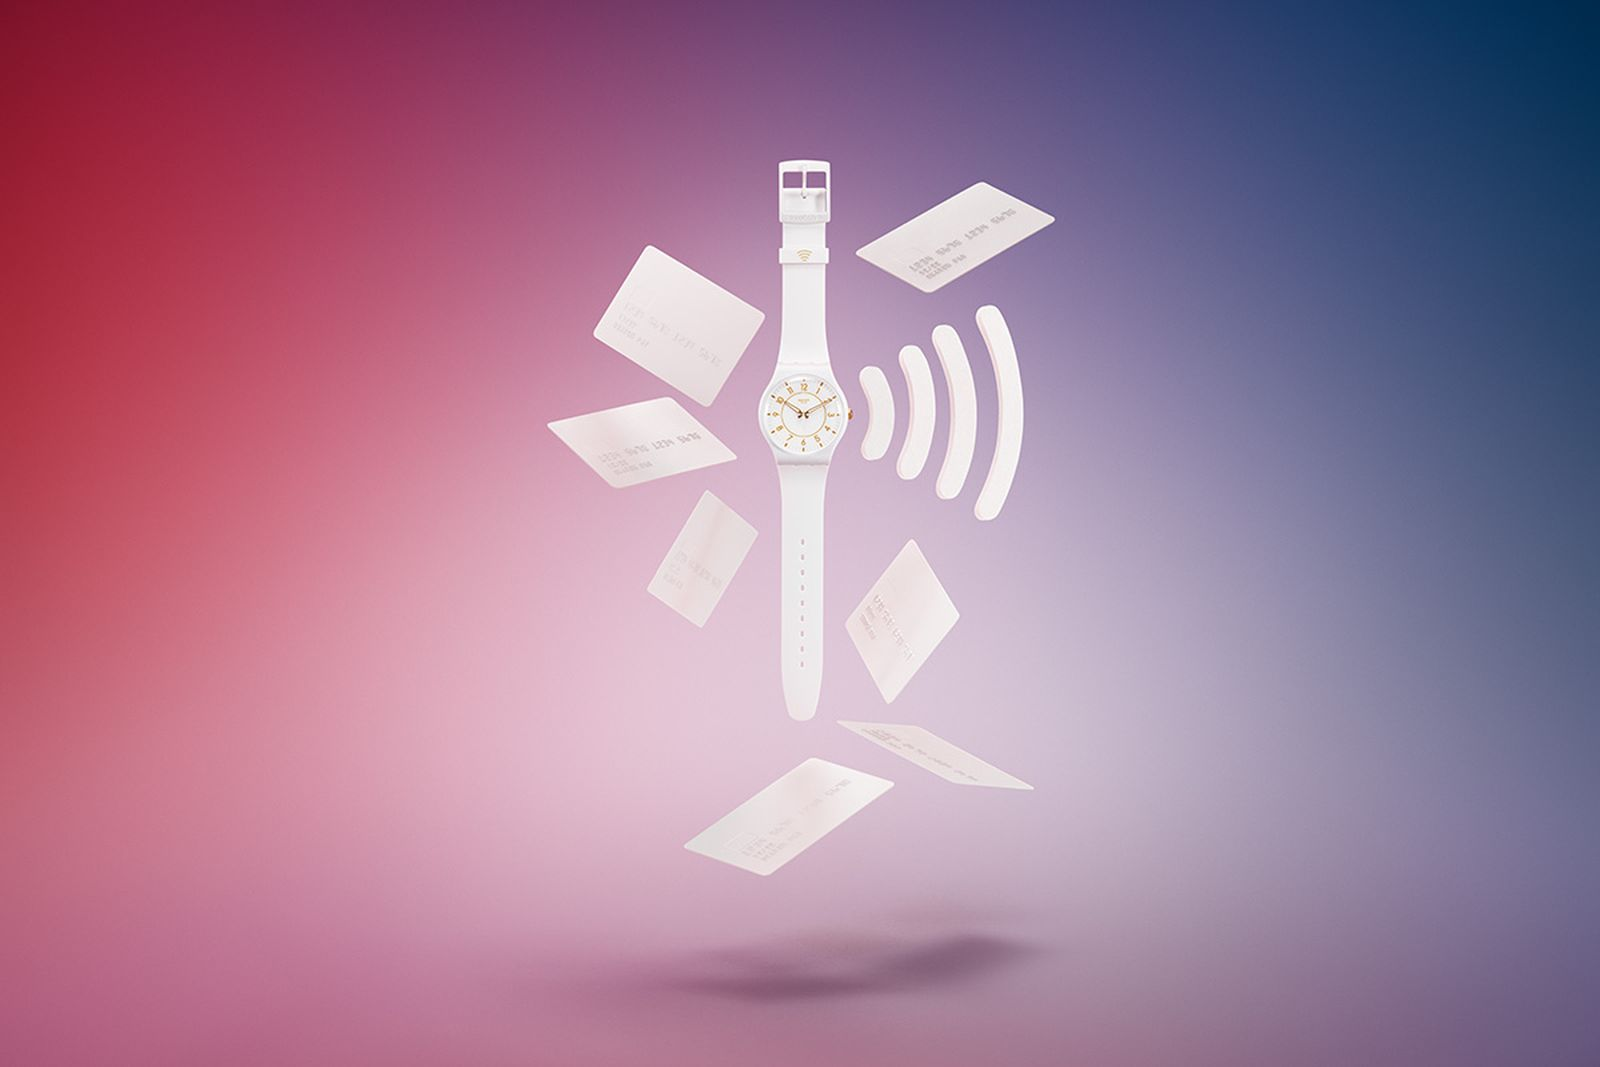 swatch swatchpay contactless payment SwatchPAY!